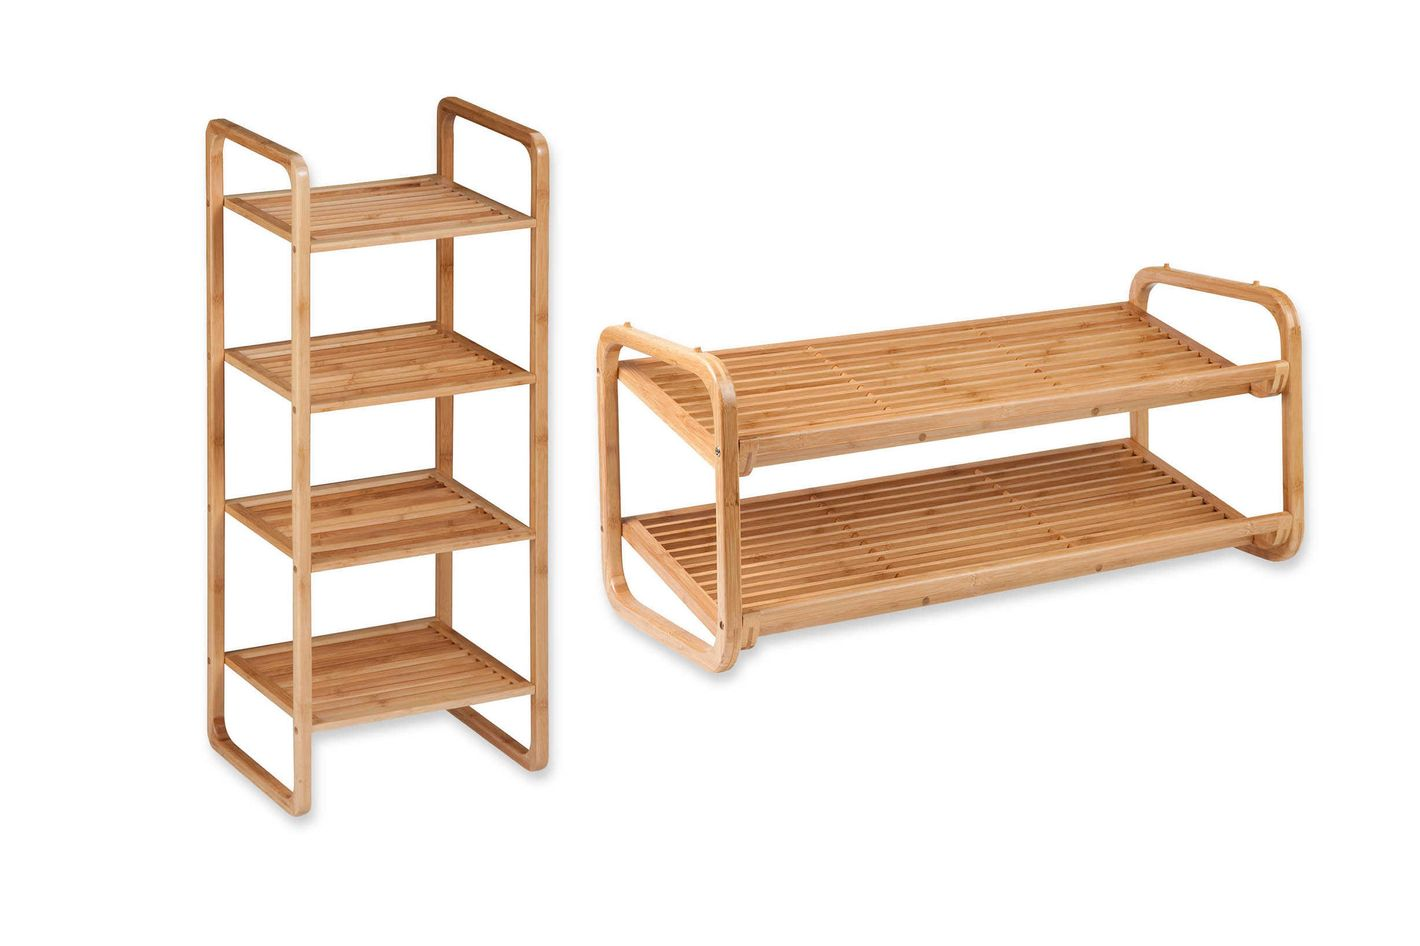 Honey-Can-Do 2-Tier Bamboo Shoe Rack